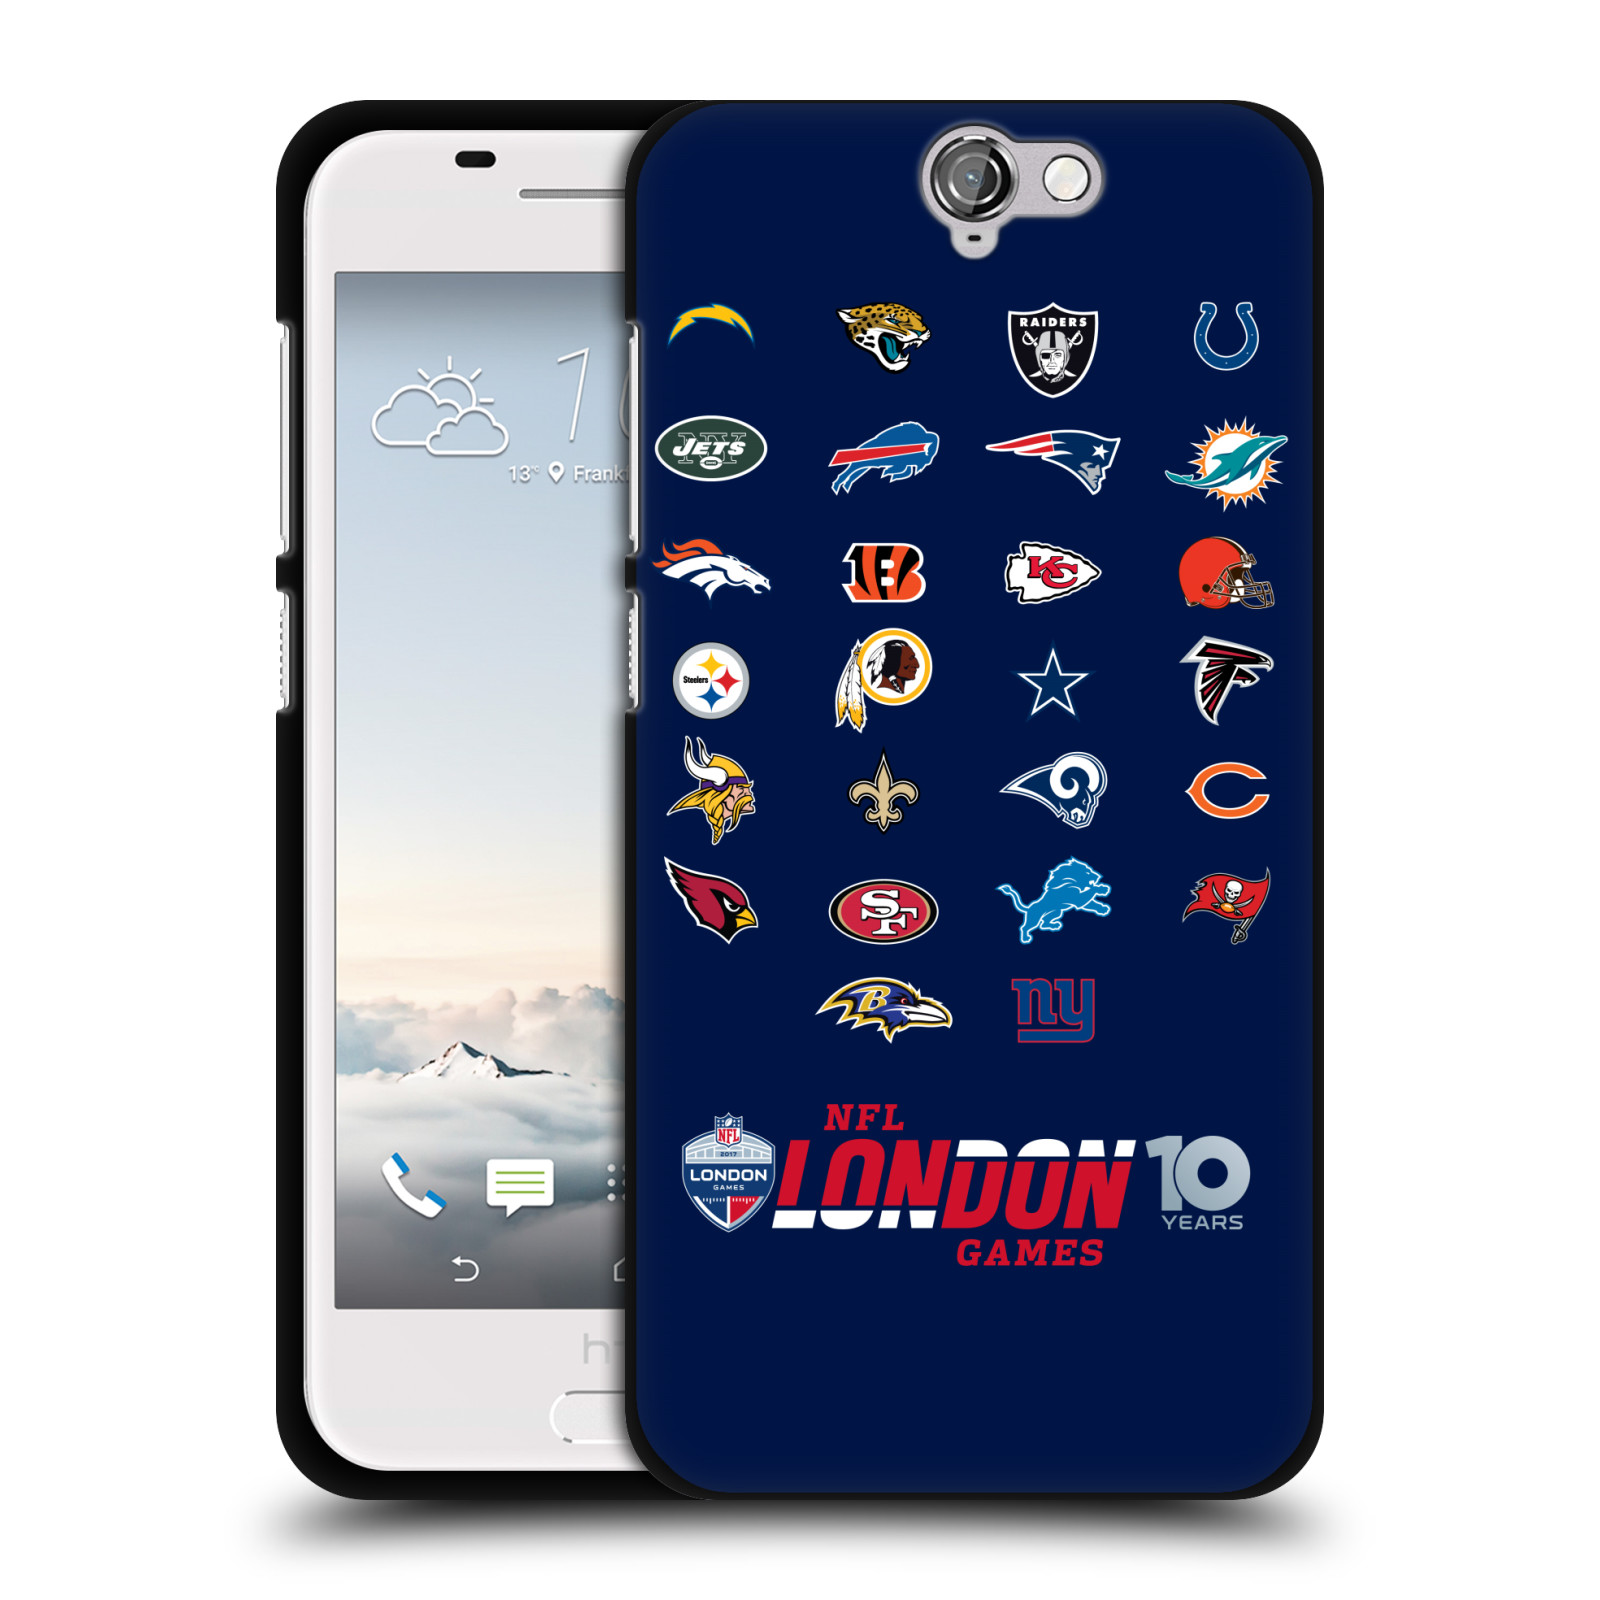 OFFICIAL-NFL-2017-LONDON-GAMES-10-YEARS-BLACK-SOFT-GEL-CASE-FOR-HTC-PHONES